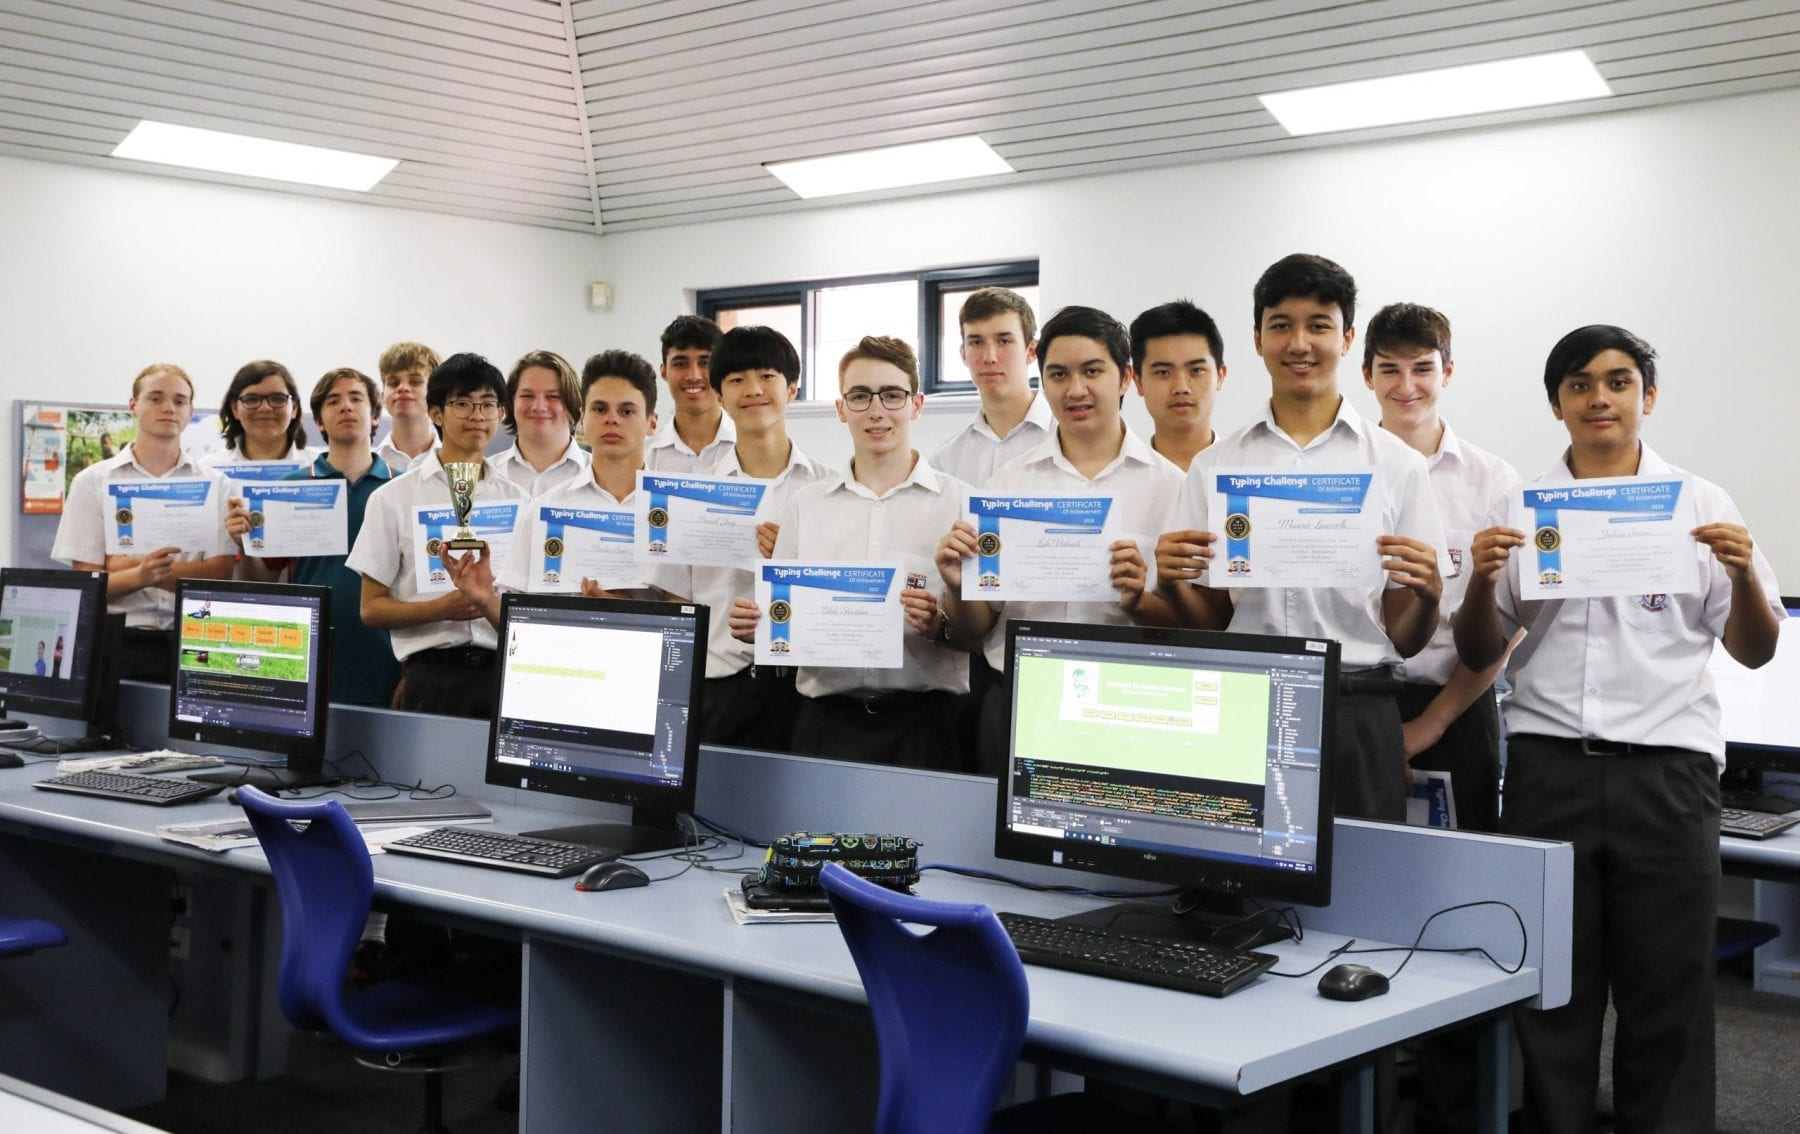 Students with Typing Challenge Certificates